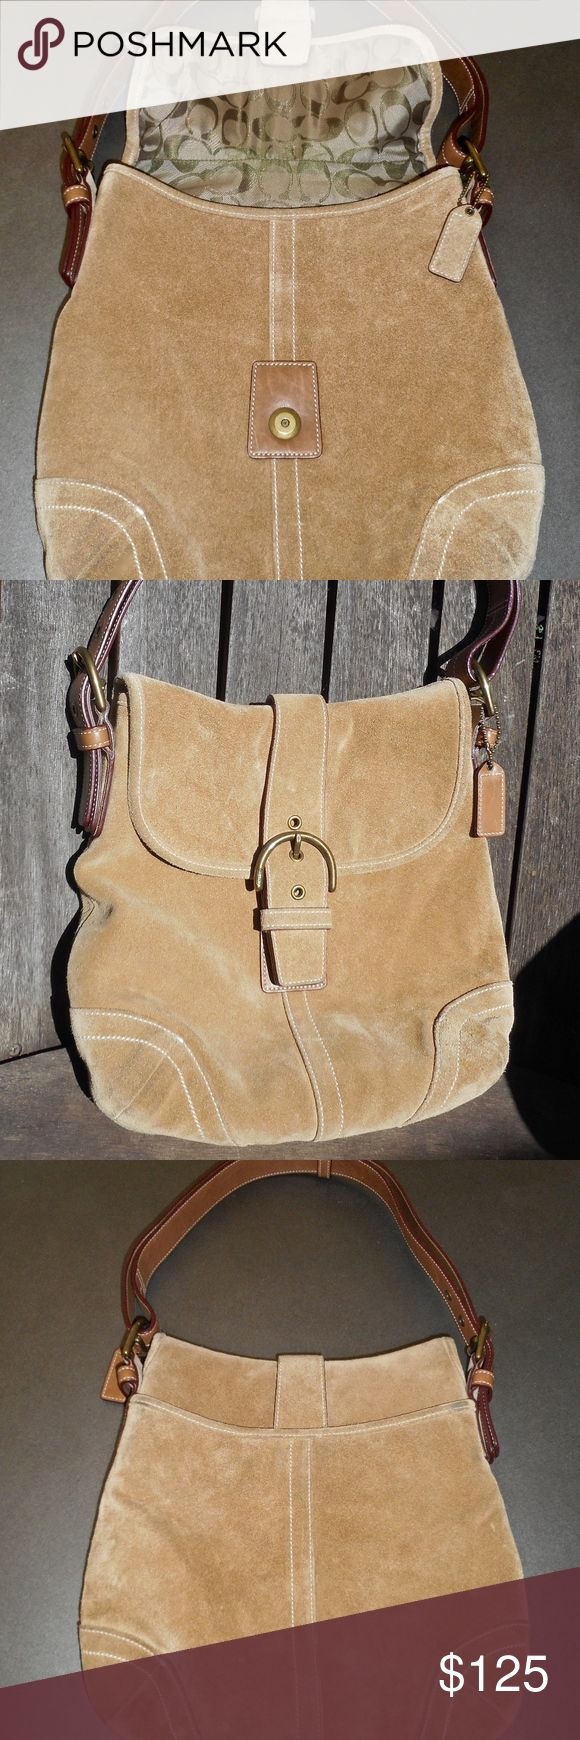 "very gently used coach satchel purse 12""w x 11""h and extremely well taken care of ultra suede Coach satchel purse. Open pocket on the back, and two sections and a zip pocket on the inside. Great looking purse, and finely crafted. You're gonna love this satchel! Coach Bags Satchels"